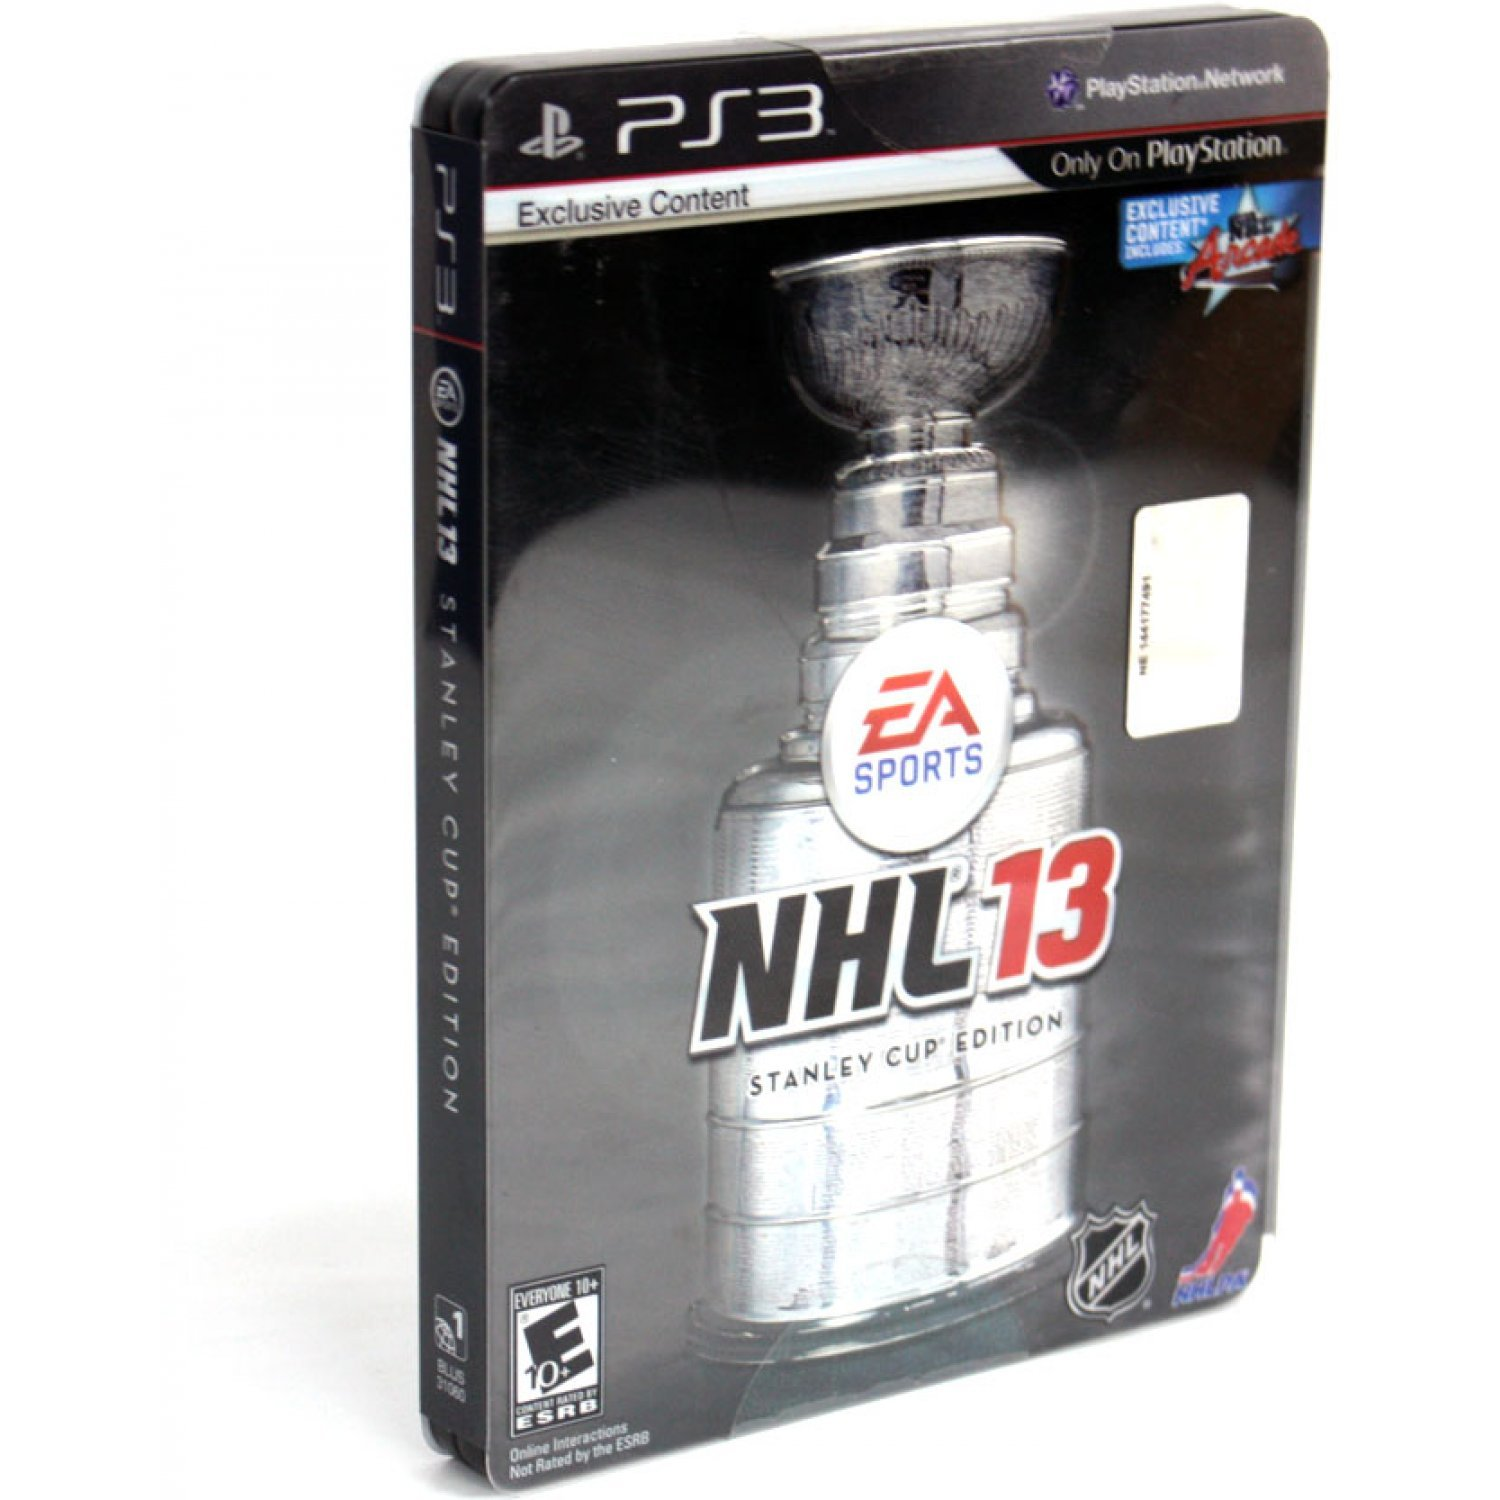 Nhl 13 - stanley cup collector's edition (microsoft xbox 360.